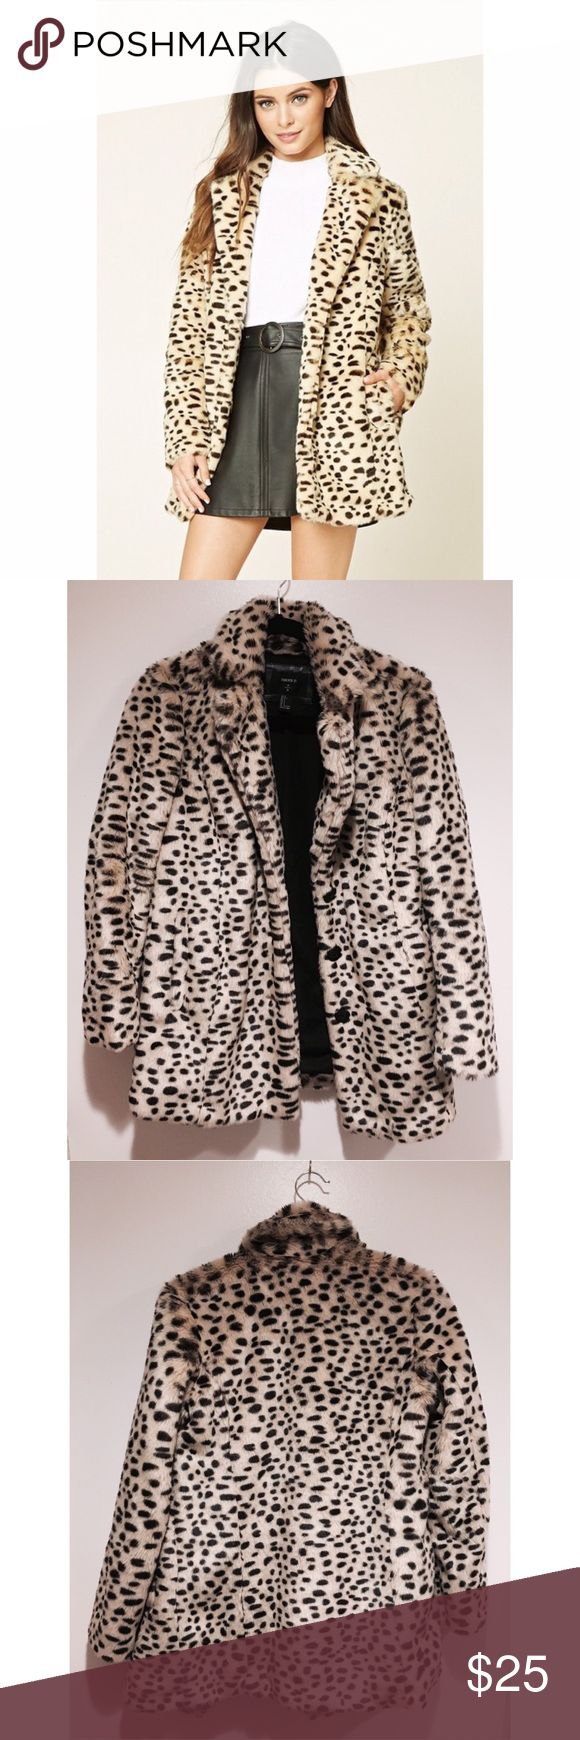 F21 Dalmatian Cheetah Faux Fur Coat - S Worn only a few times, but the inner lining was seen too tight for my shoulder. The inner liner has ripped in this area. See photos. Model upon request!   OFFERS WELCOME 😊 Forever 21 Jackets & Coats